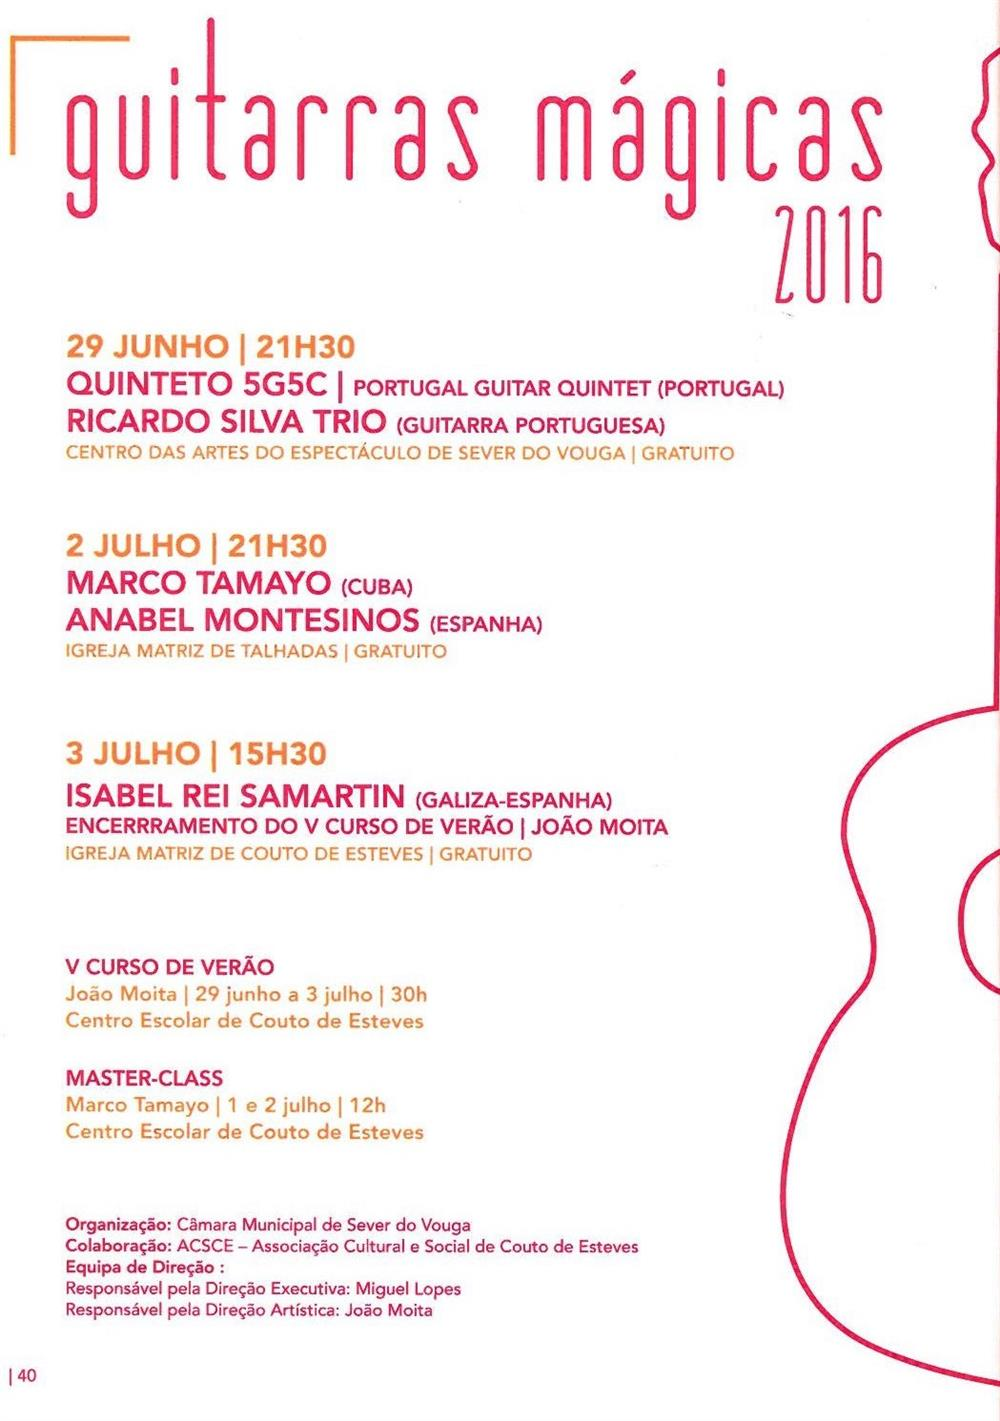 ACMSV-abr.,maio,jun.,jul.'16-p.40-Guitarras Mágicas 2016.jpg